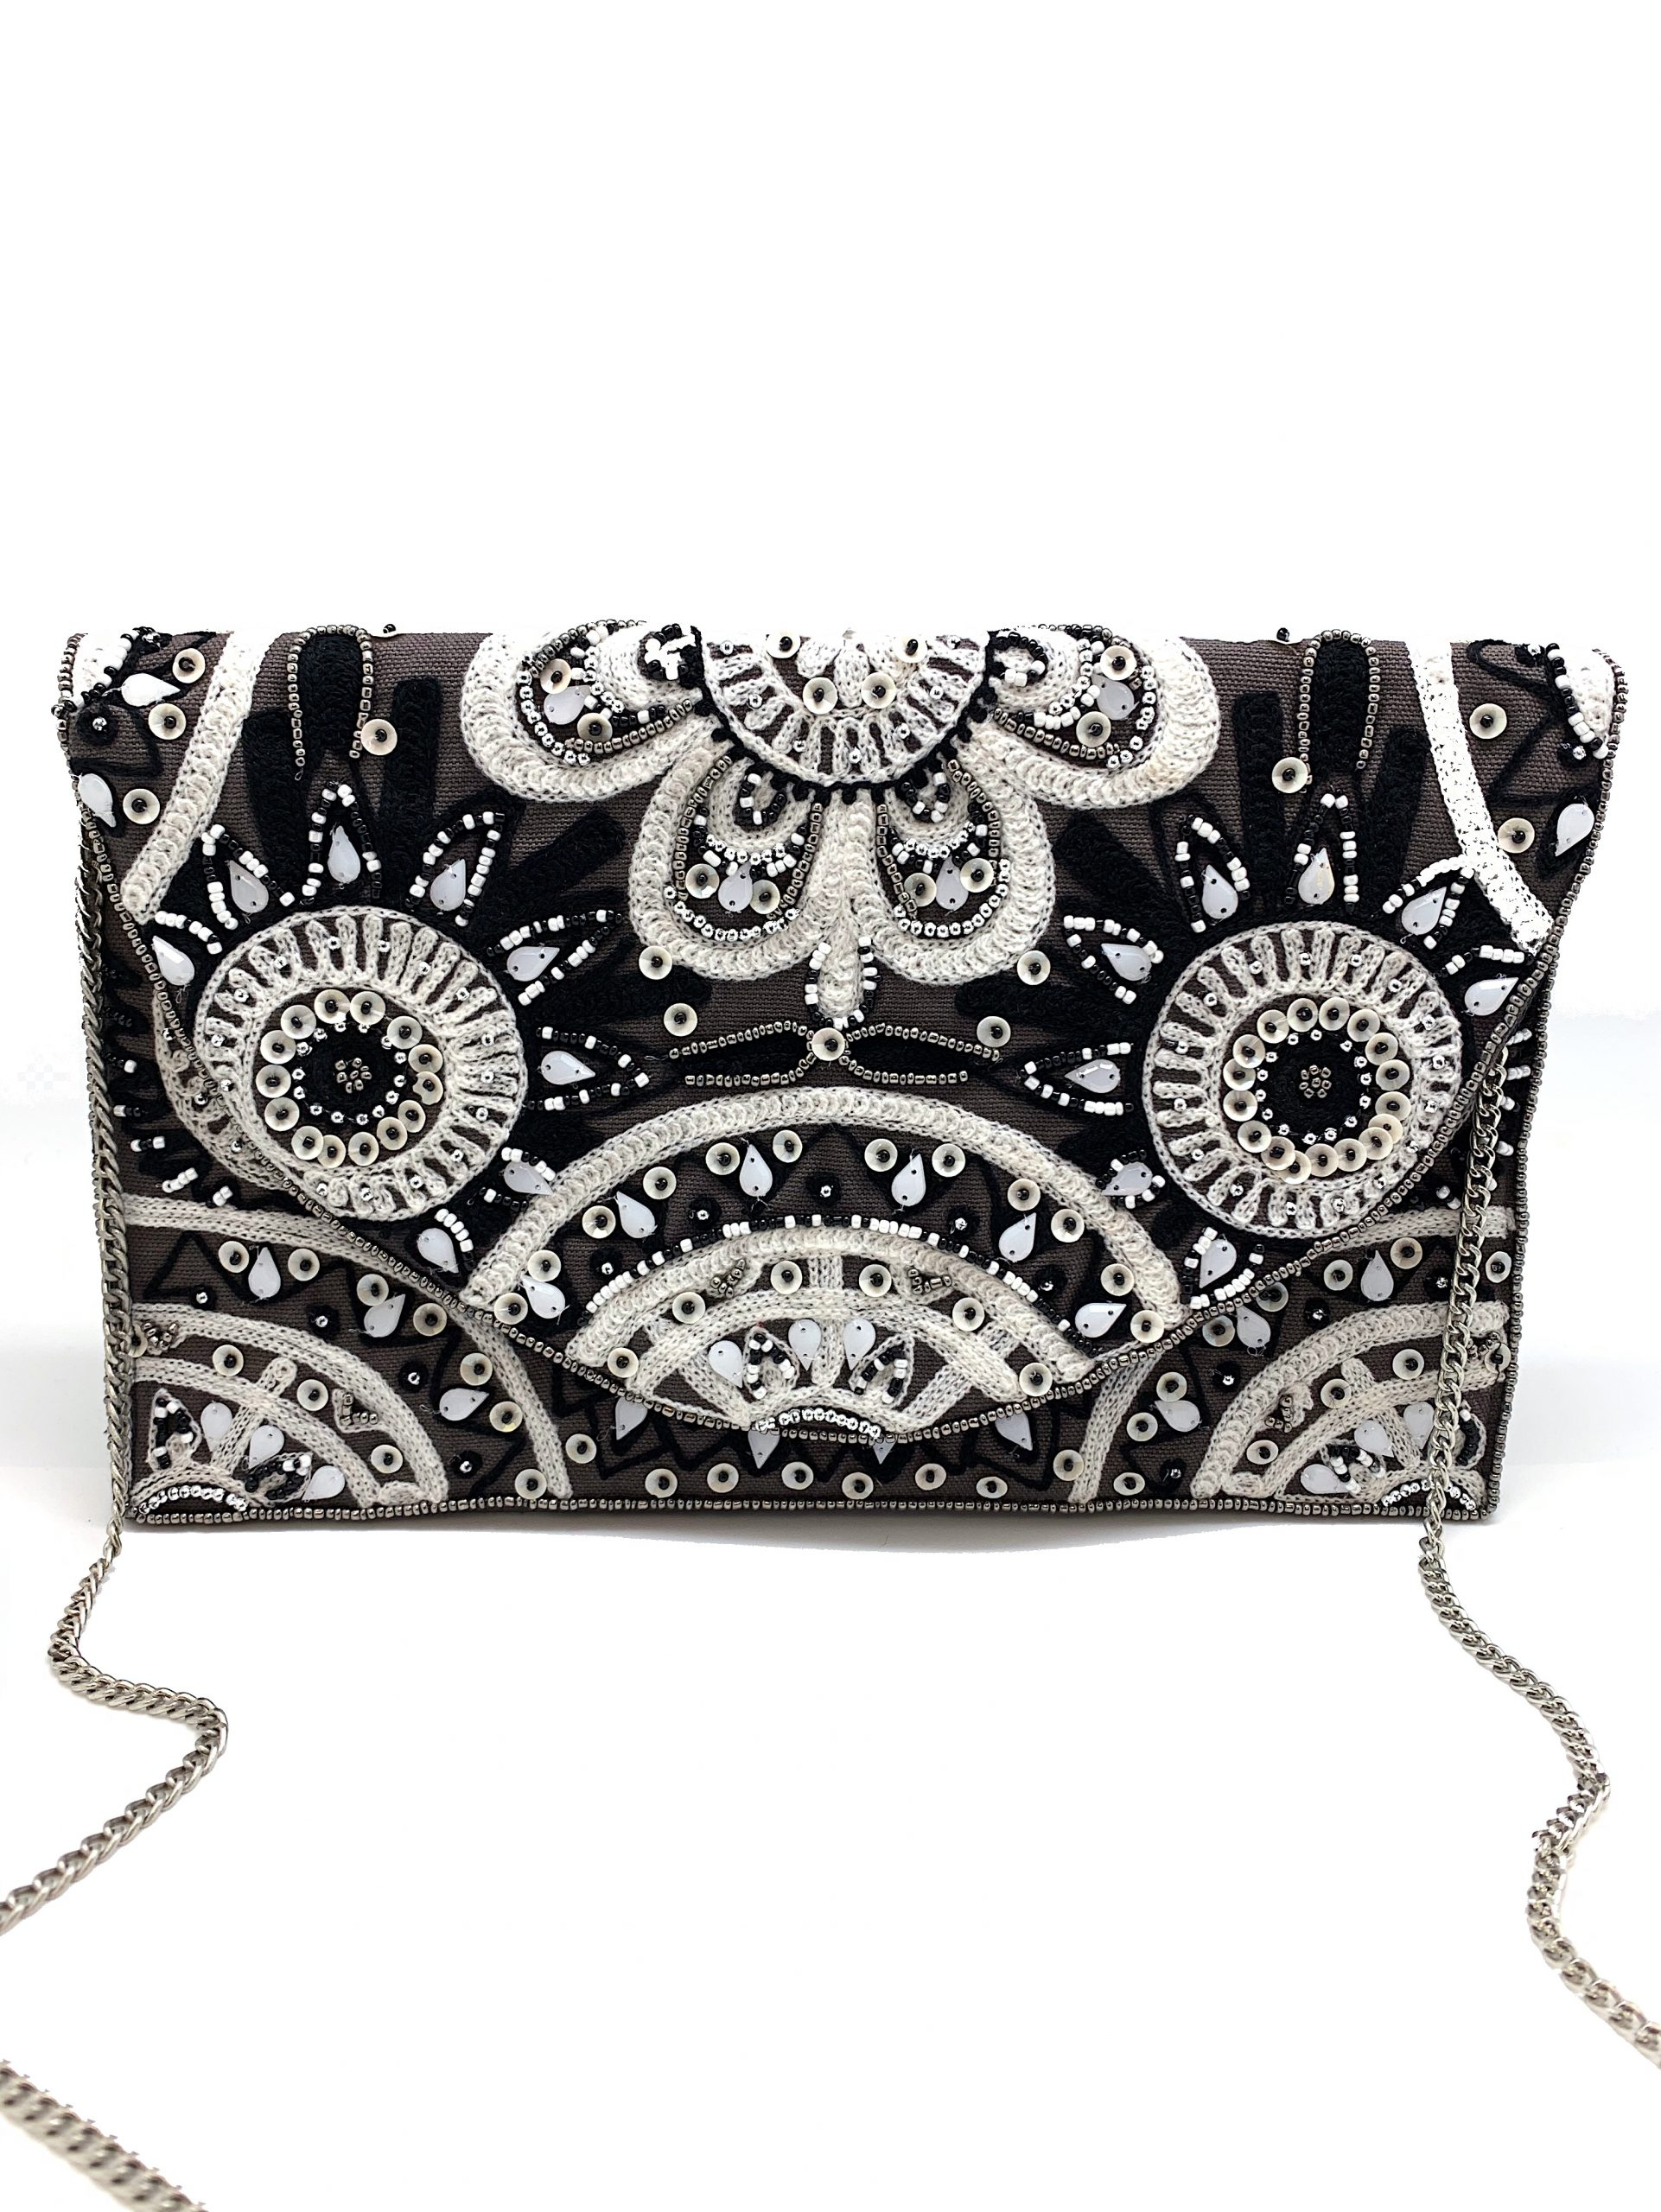 BLACK AND WHITE EMBROIDERED CLUTCH